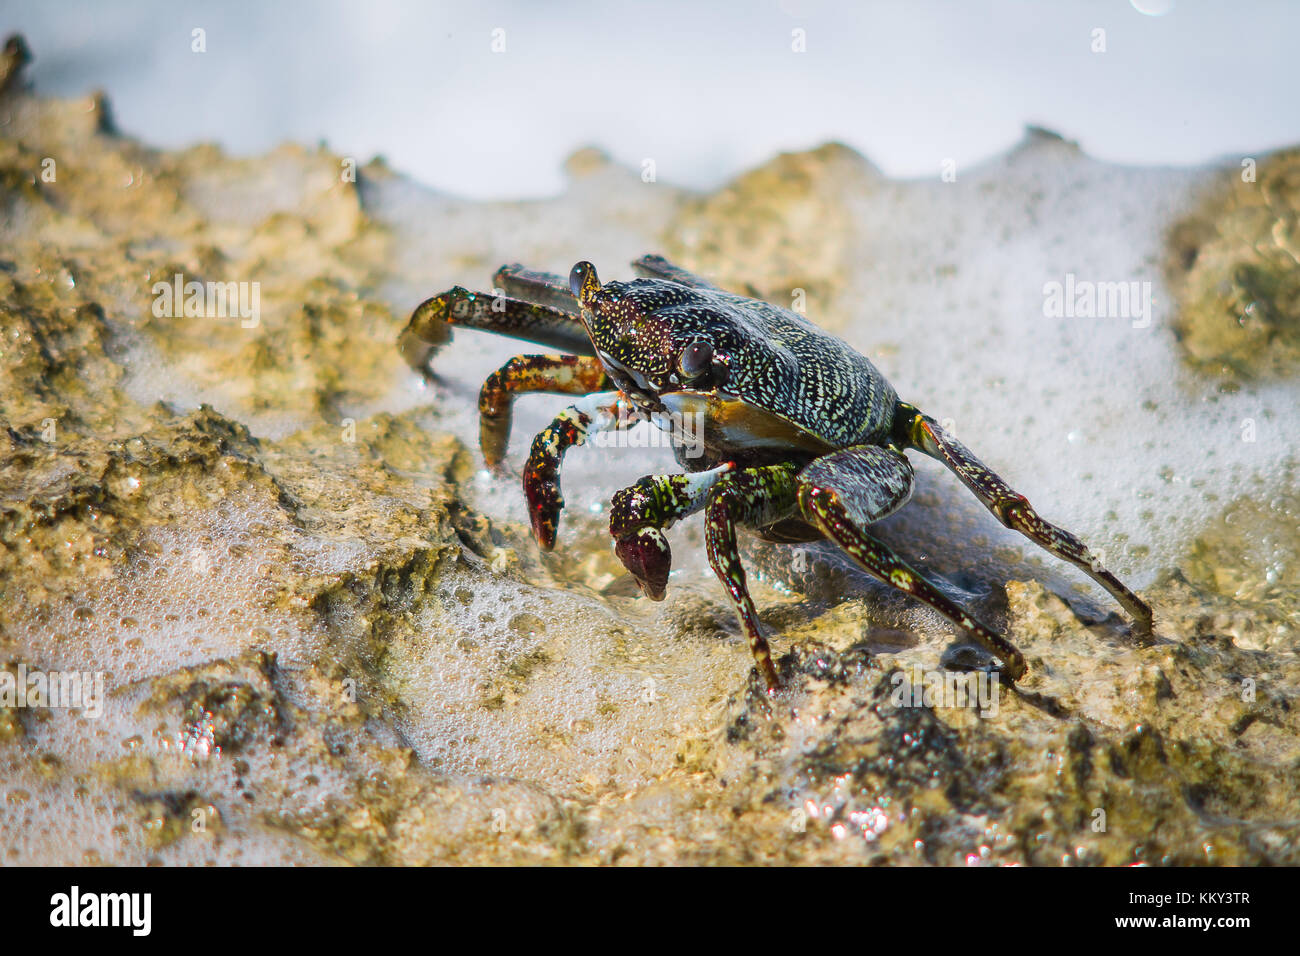 Crab trying to make it to its feeding grounds. It's a dangerous gauntlet they have to run few times every day, - Stock Image